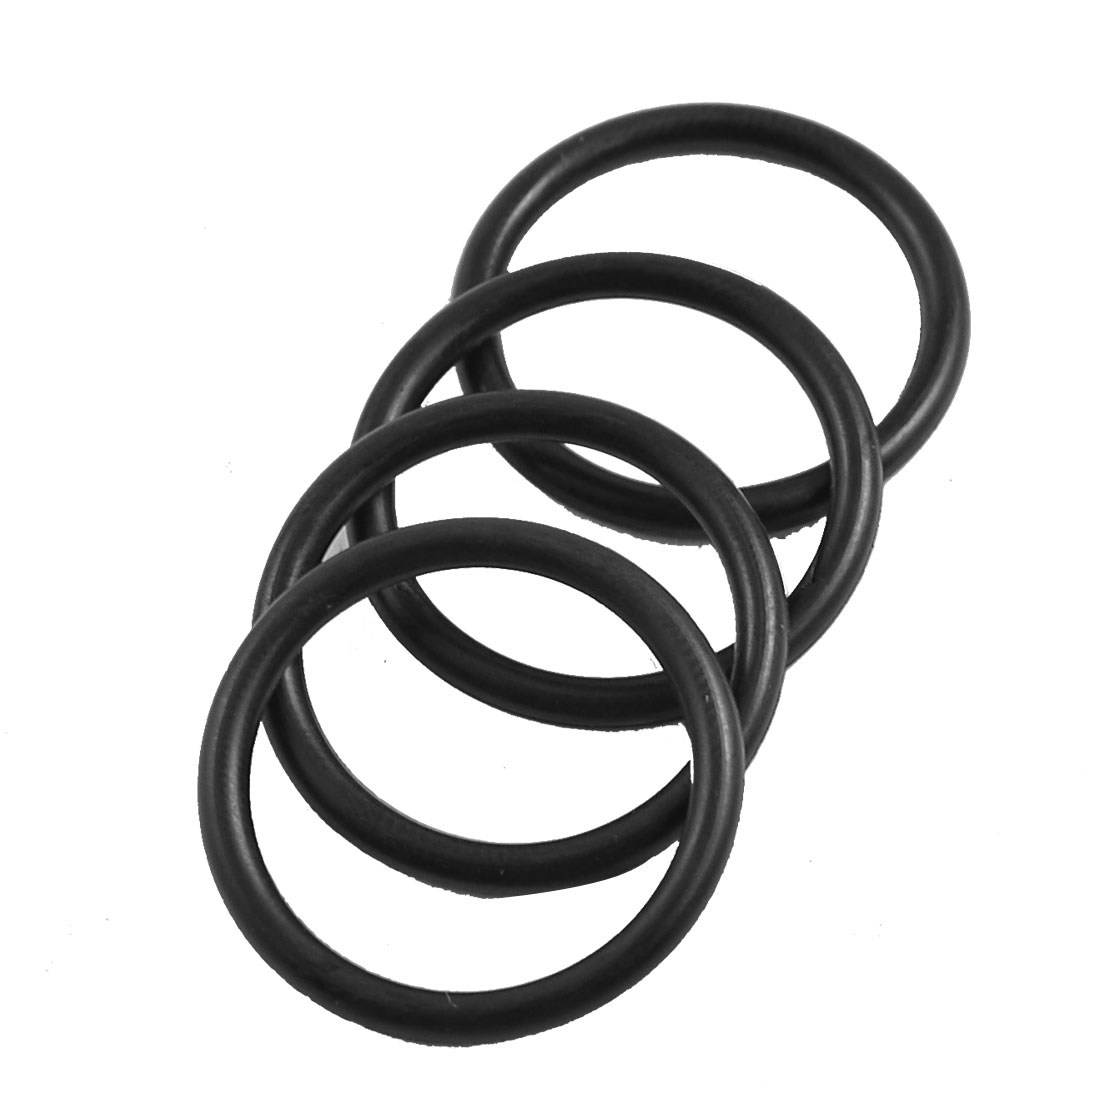 4 Pcs 24mm x 2.2mm x 19.6mm Rubber Oil Sealing O Rings for Mechanical